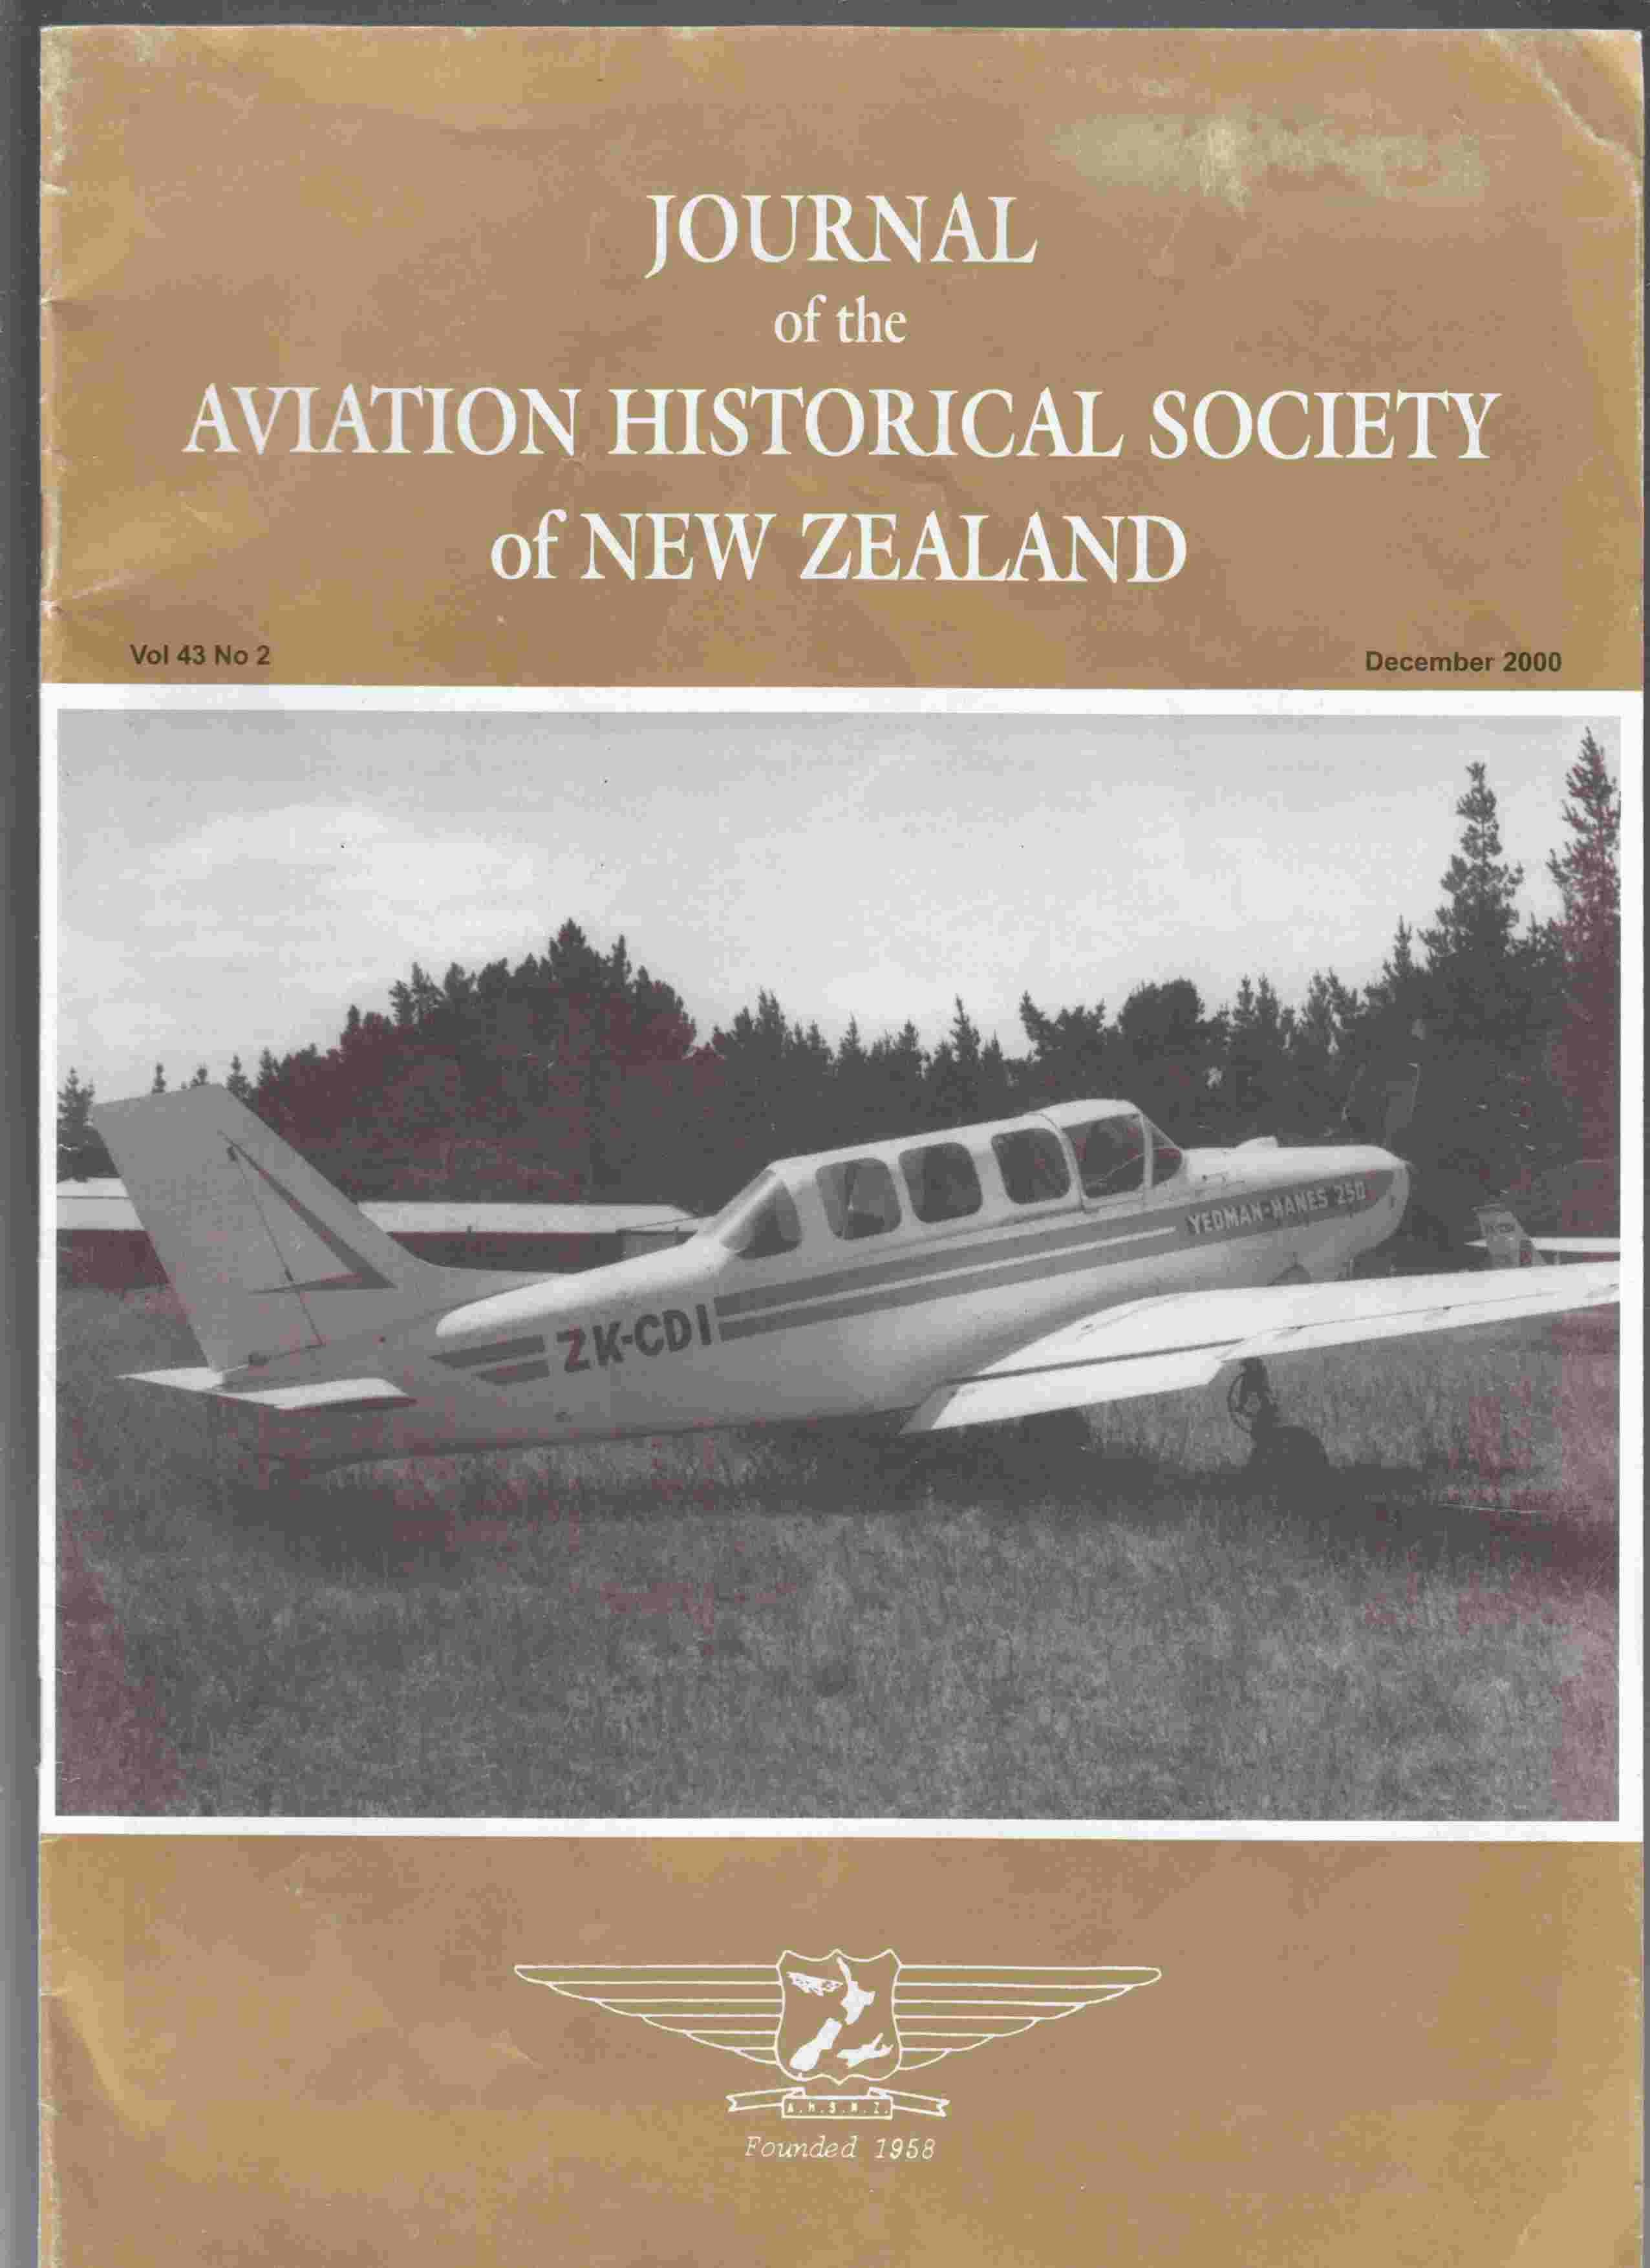 Image for Journal of the Aviation Historical Society of New Zealand Vol 43 No 2 December 2000